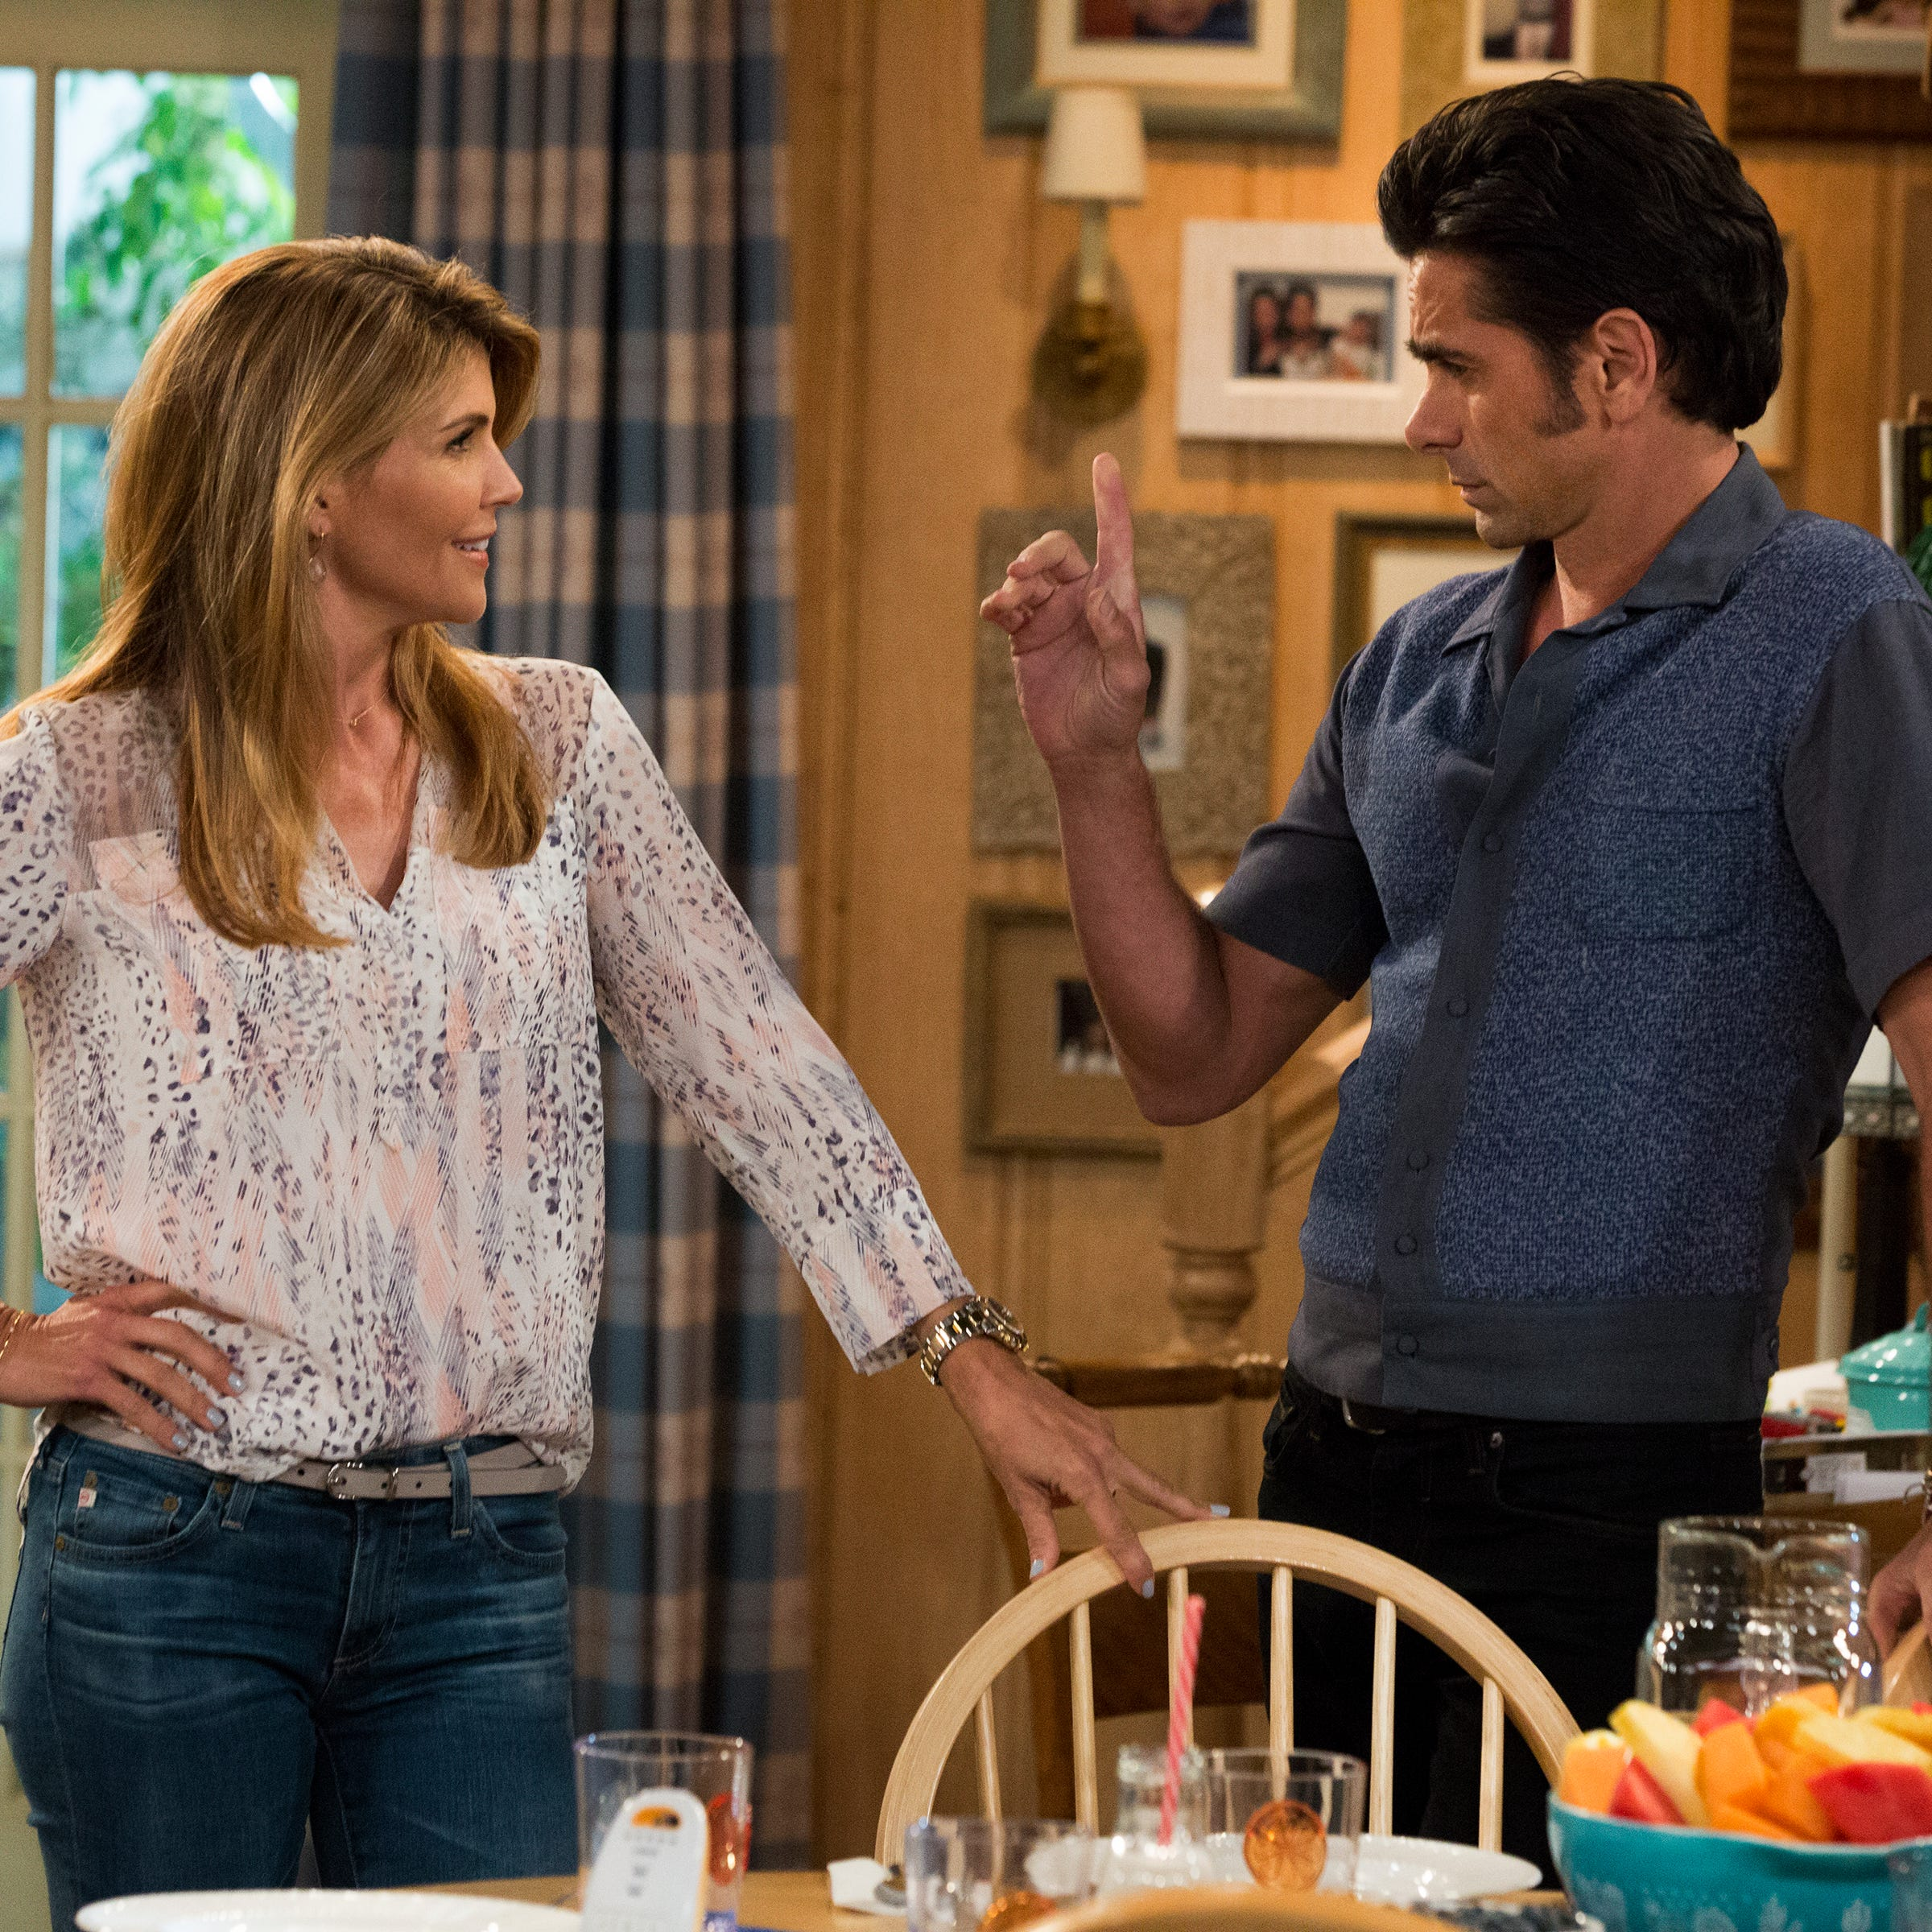 """A scene from Netflix's """"Fuller House"""" with Lori Loughlin and John Stamos."""